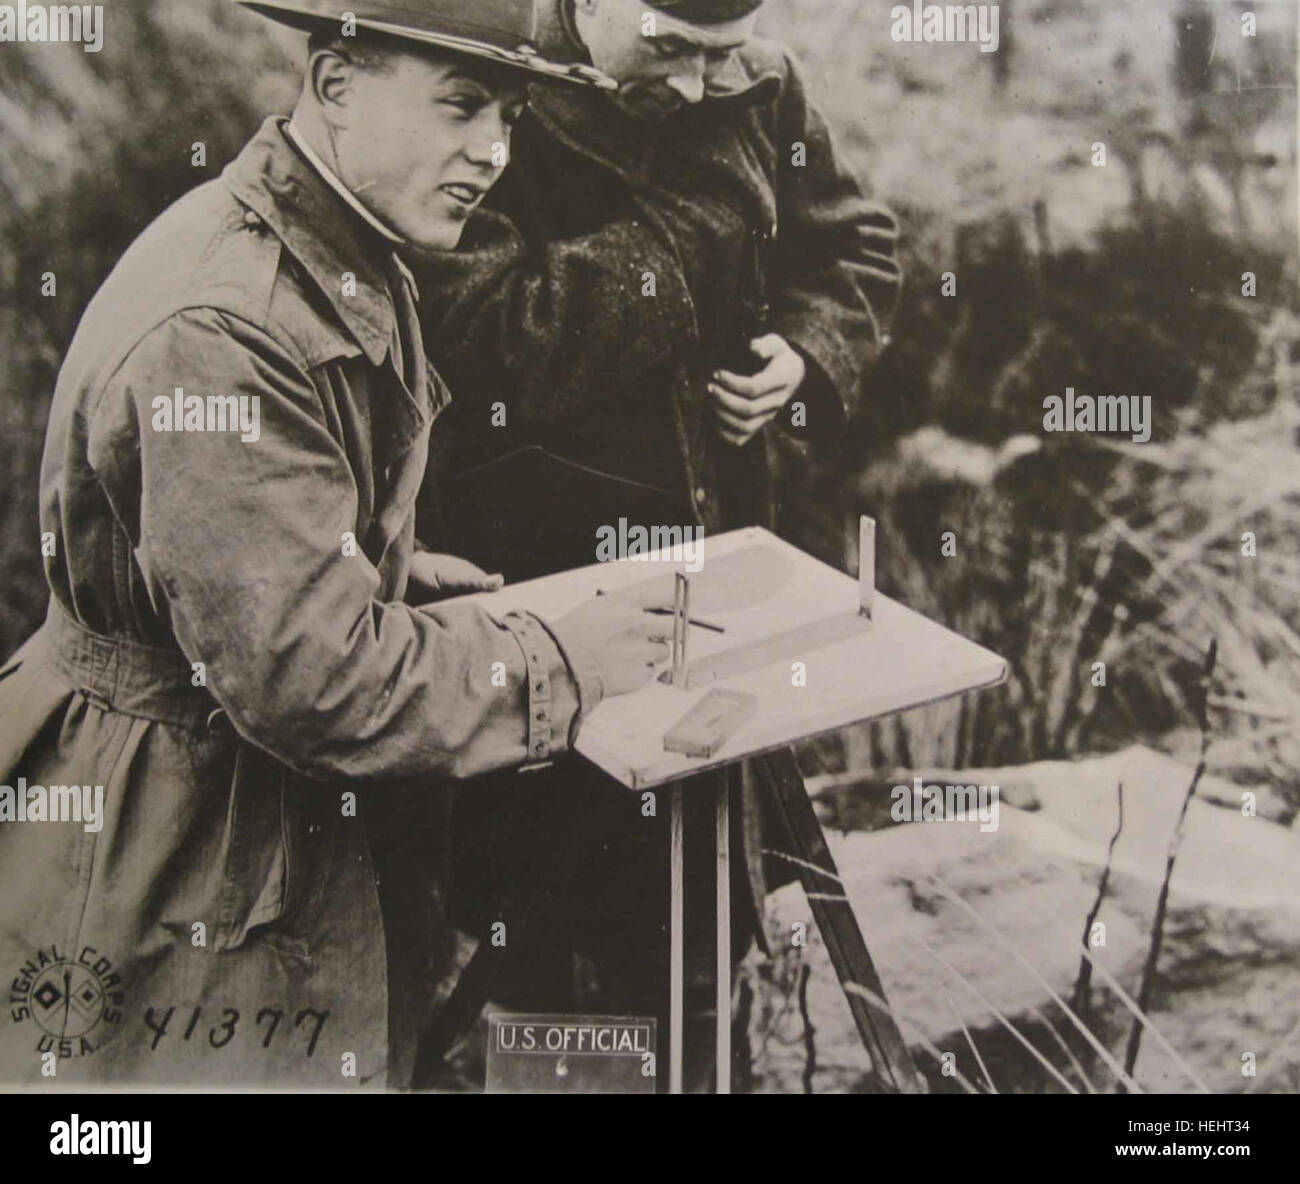 US Army Corps of Engineers Map Making, World War I Stock Photo ...